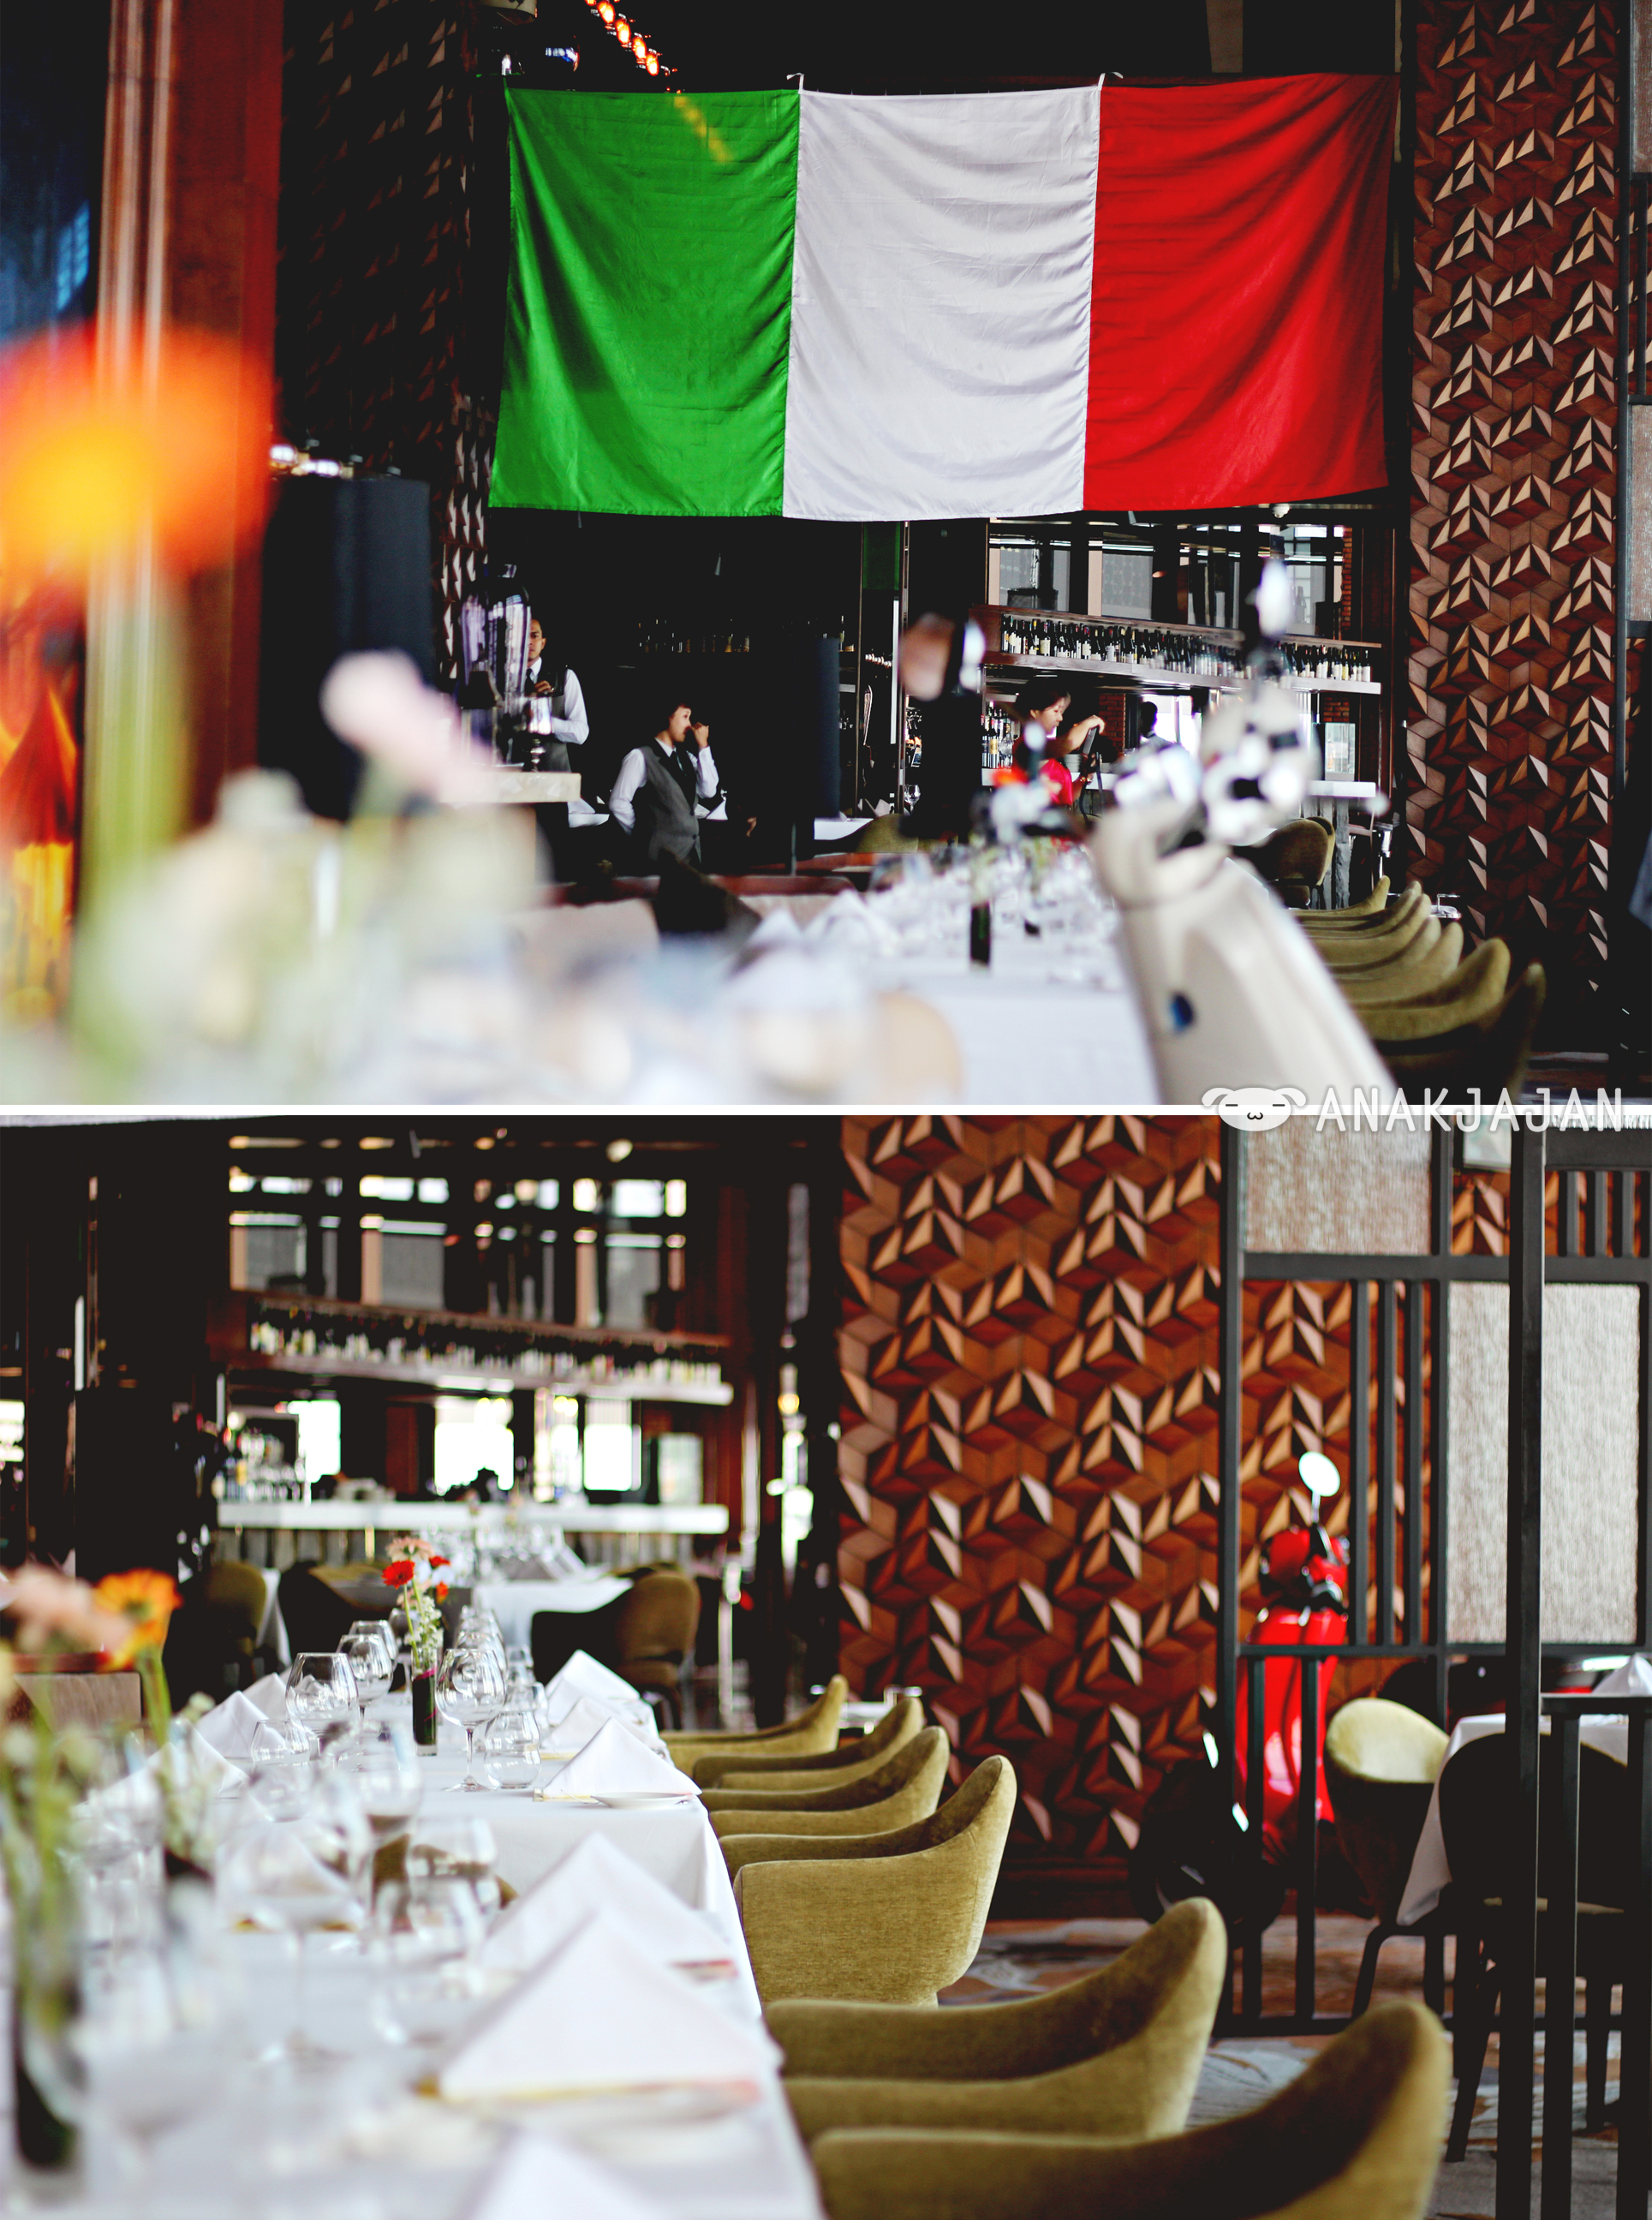 How Much Is Tax >> Brunch at GAIA – Altitude The Plaza Jakarta | ANAKJAJAN.COM